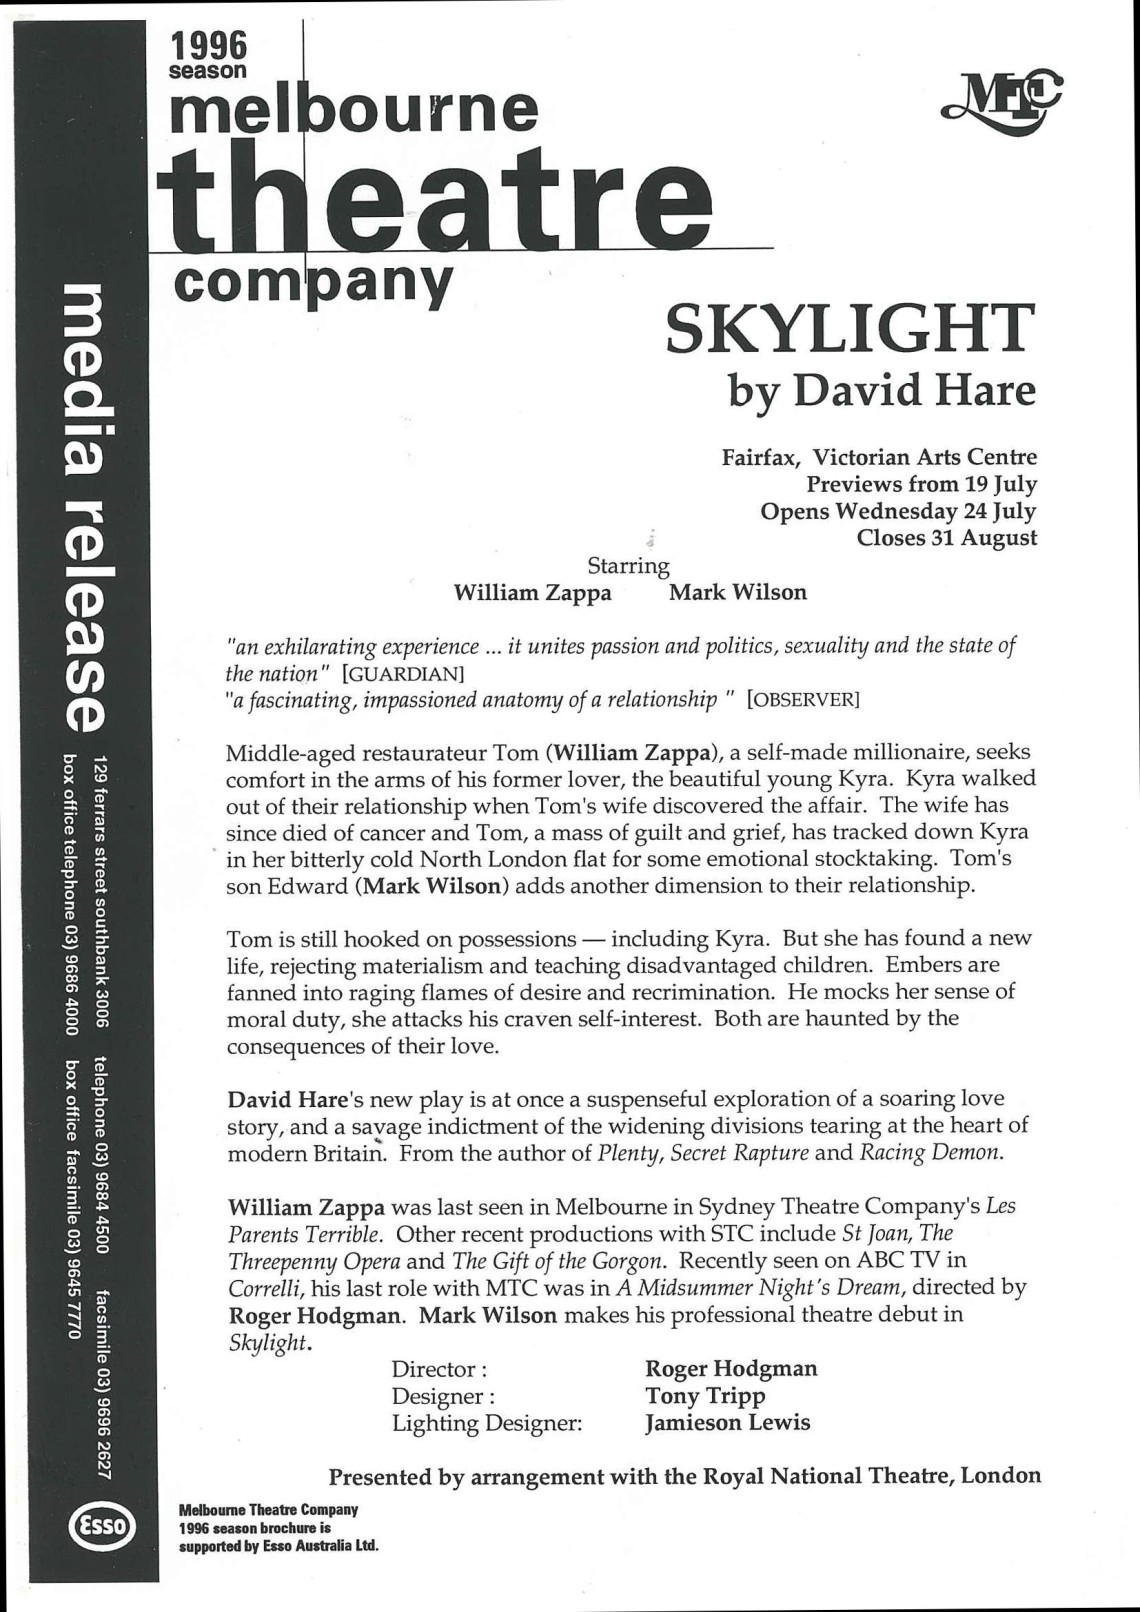 Skylight press release